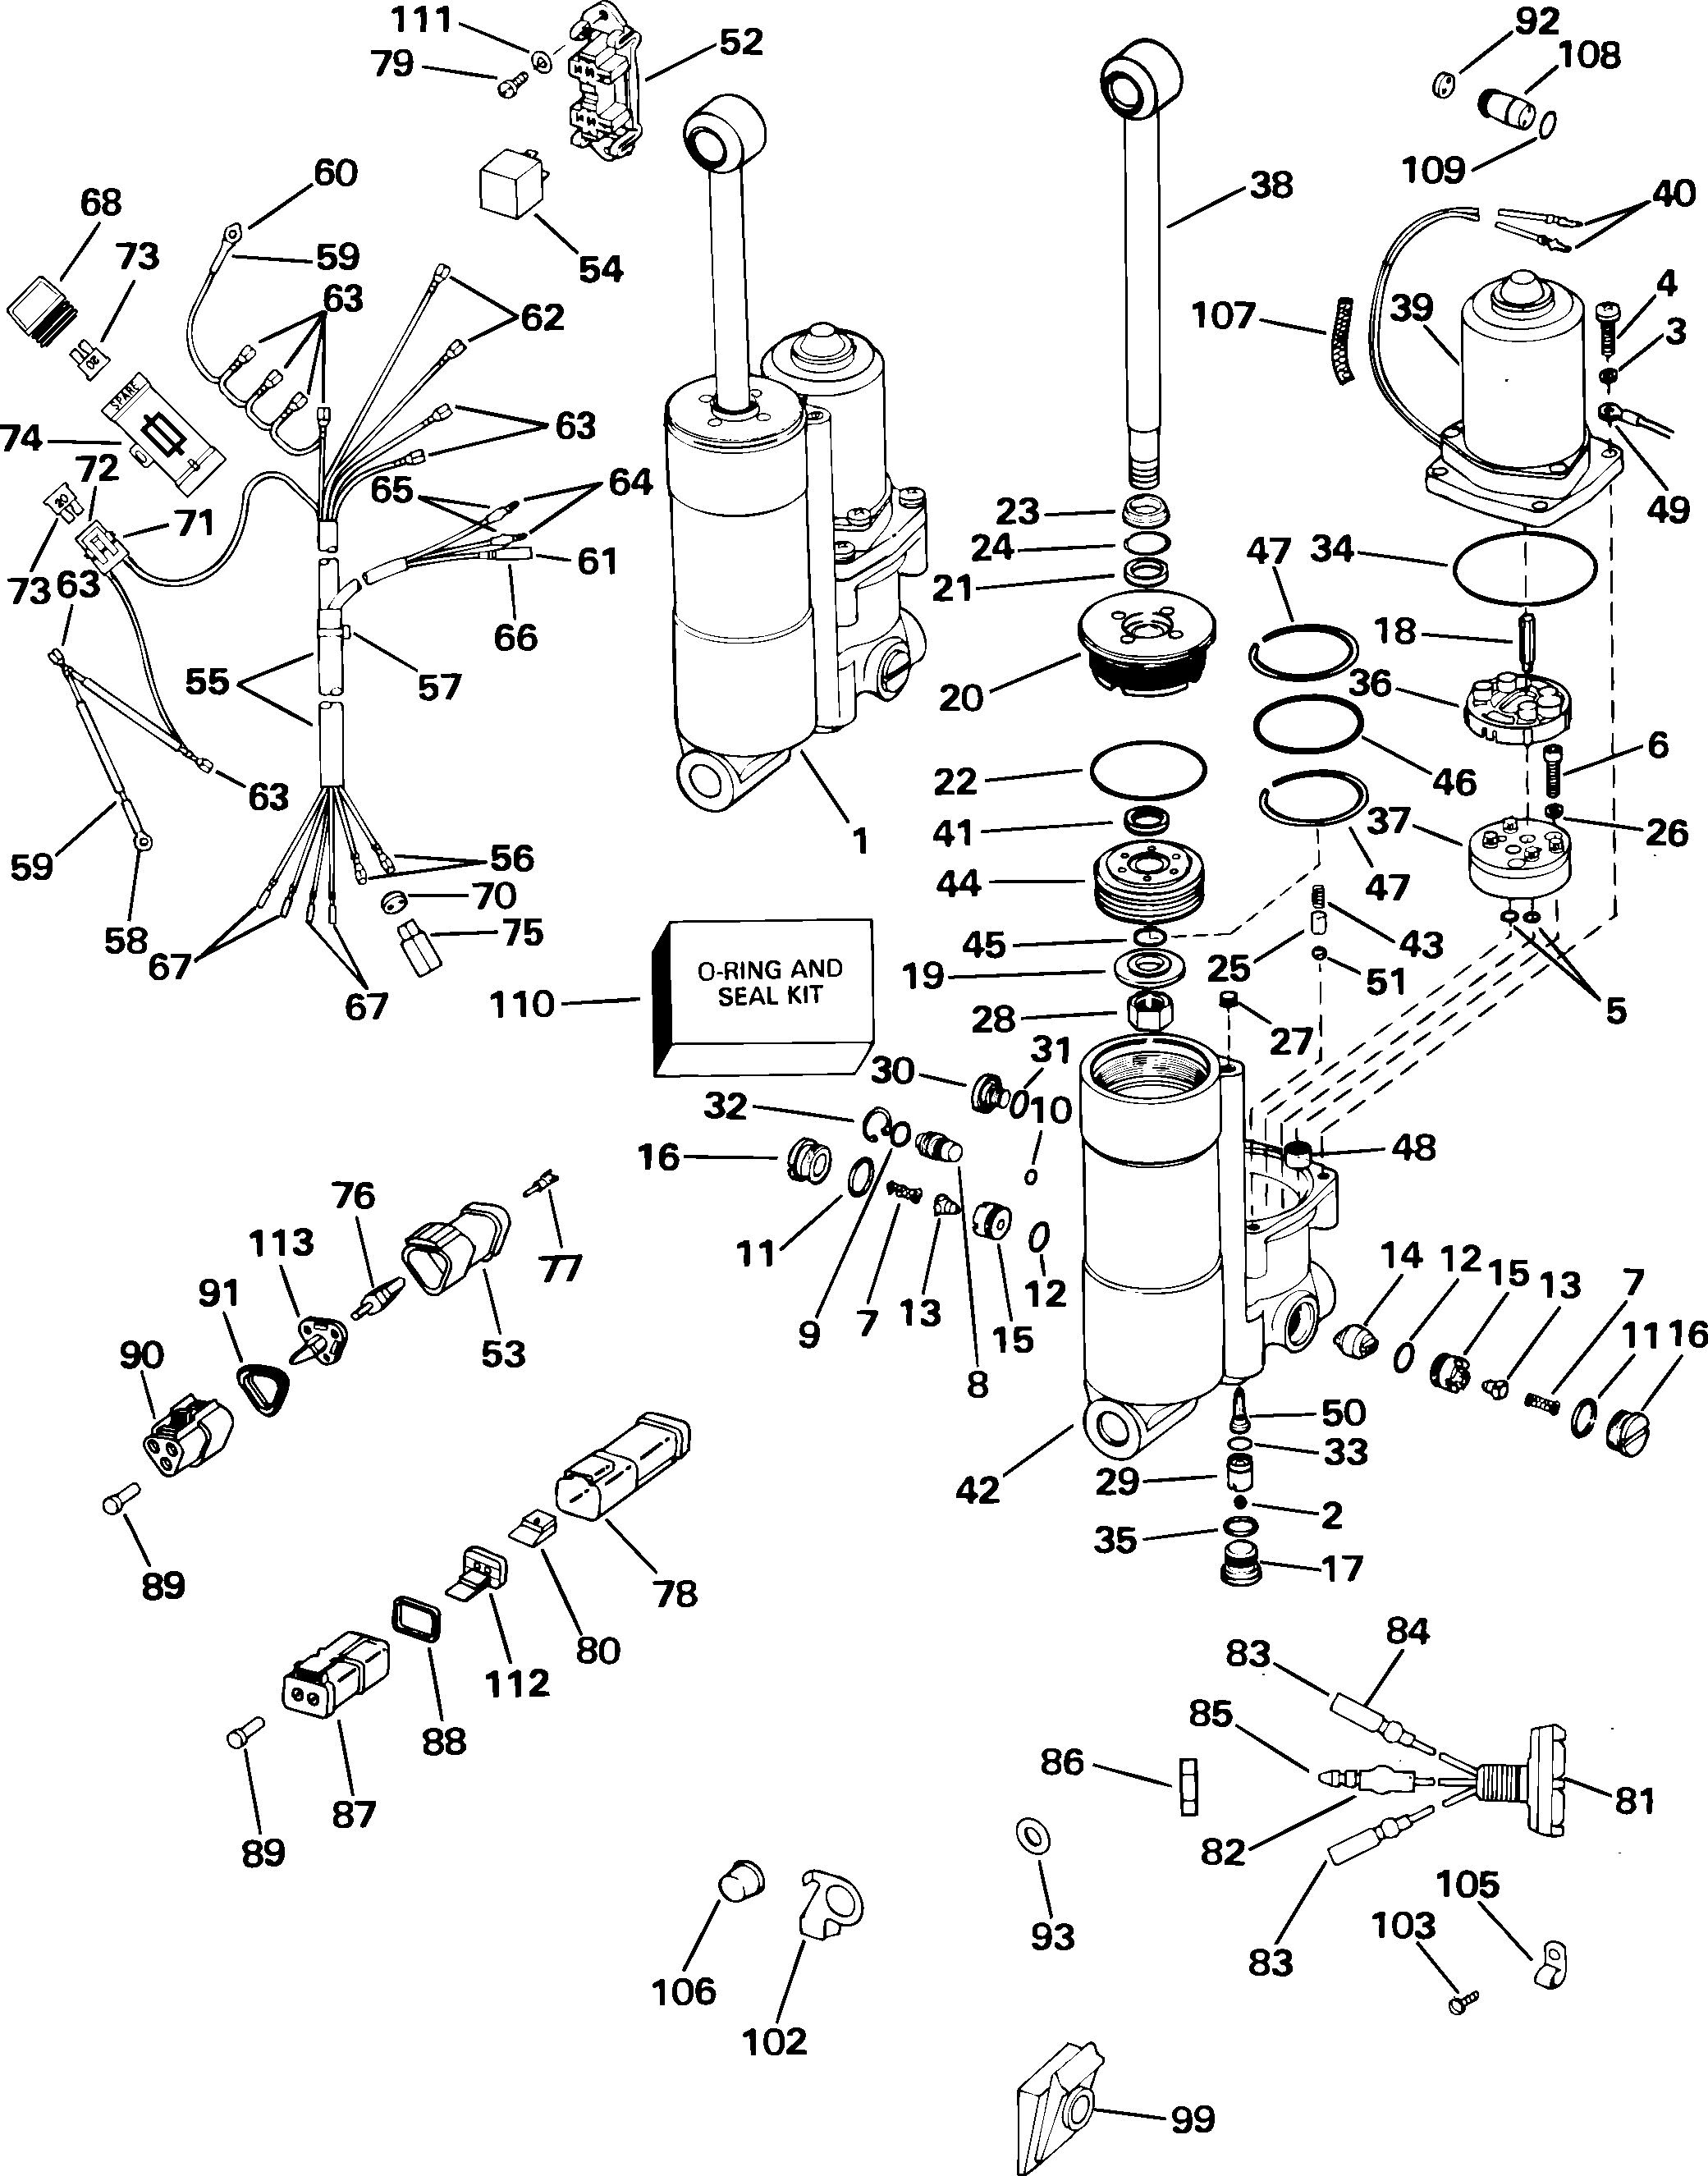 Sd 4535 Outboard Wiring Harness Diagram On Evinrude Outboard Ignition Wiring Free Diagram